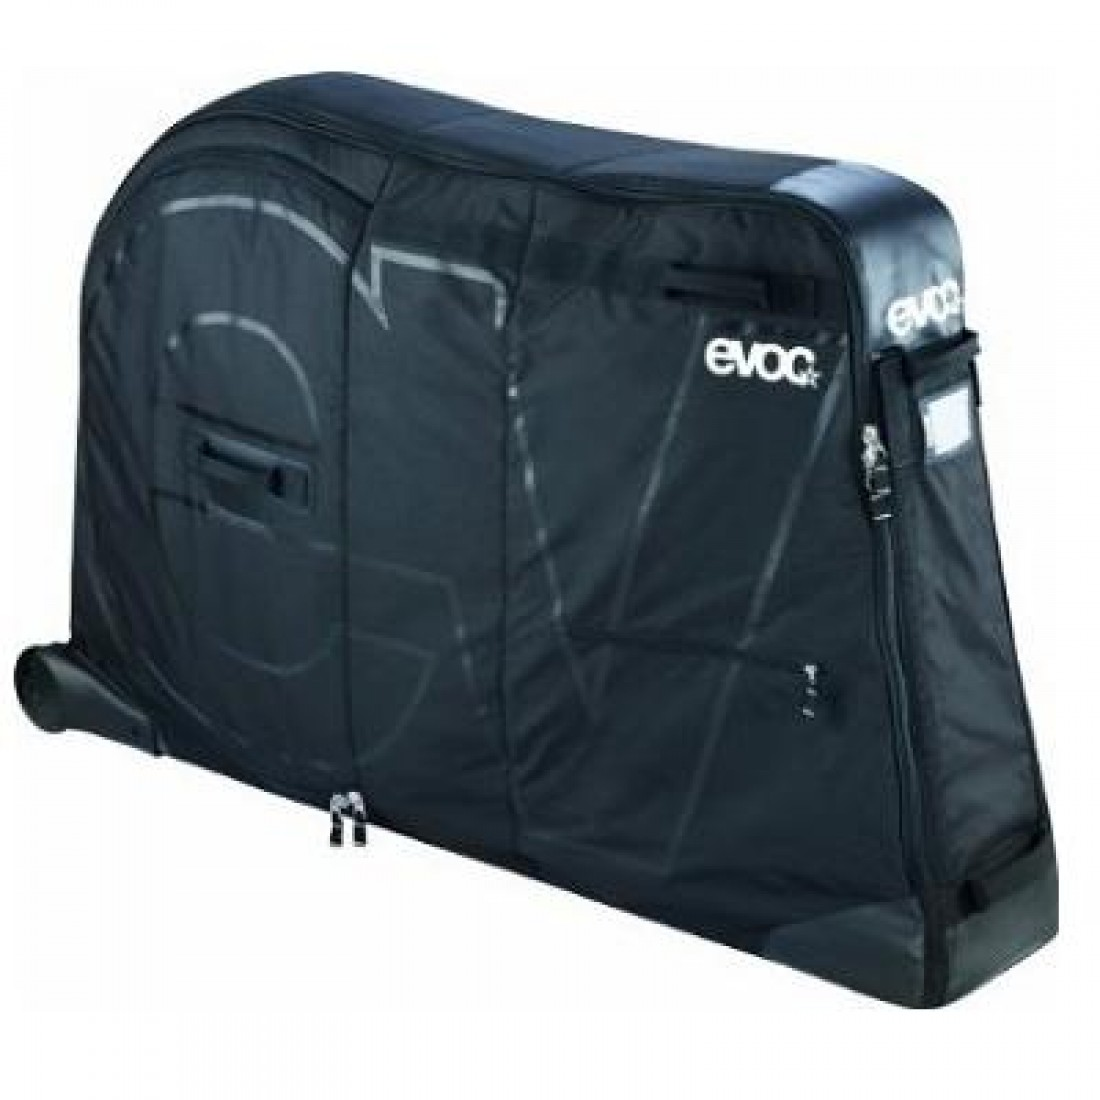 280L EVOC Bicycle Travel Bag